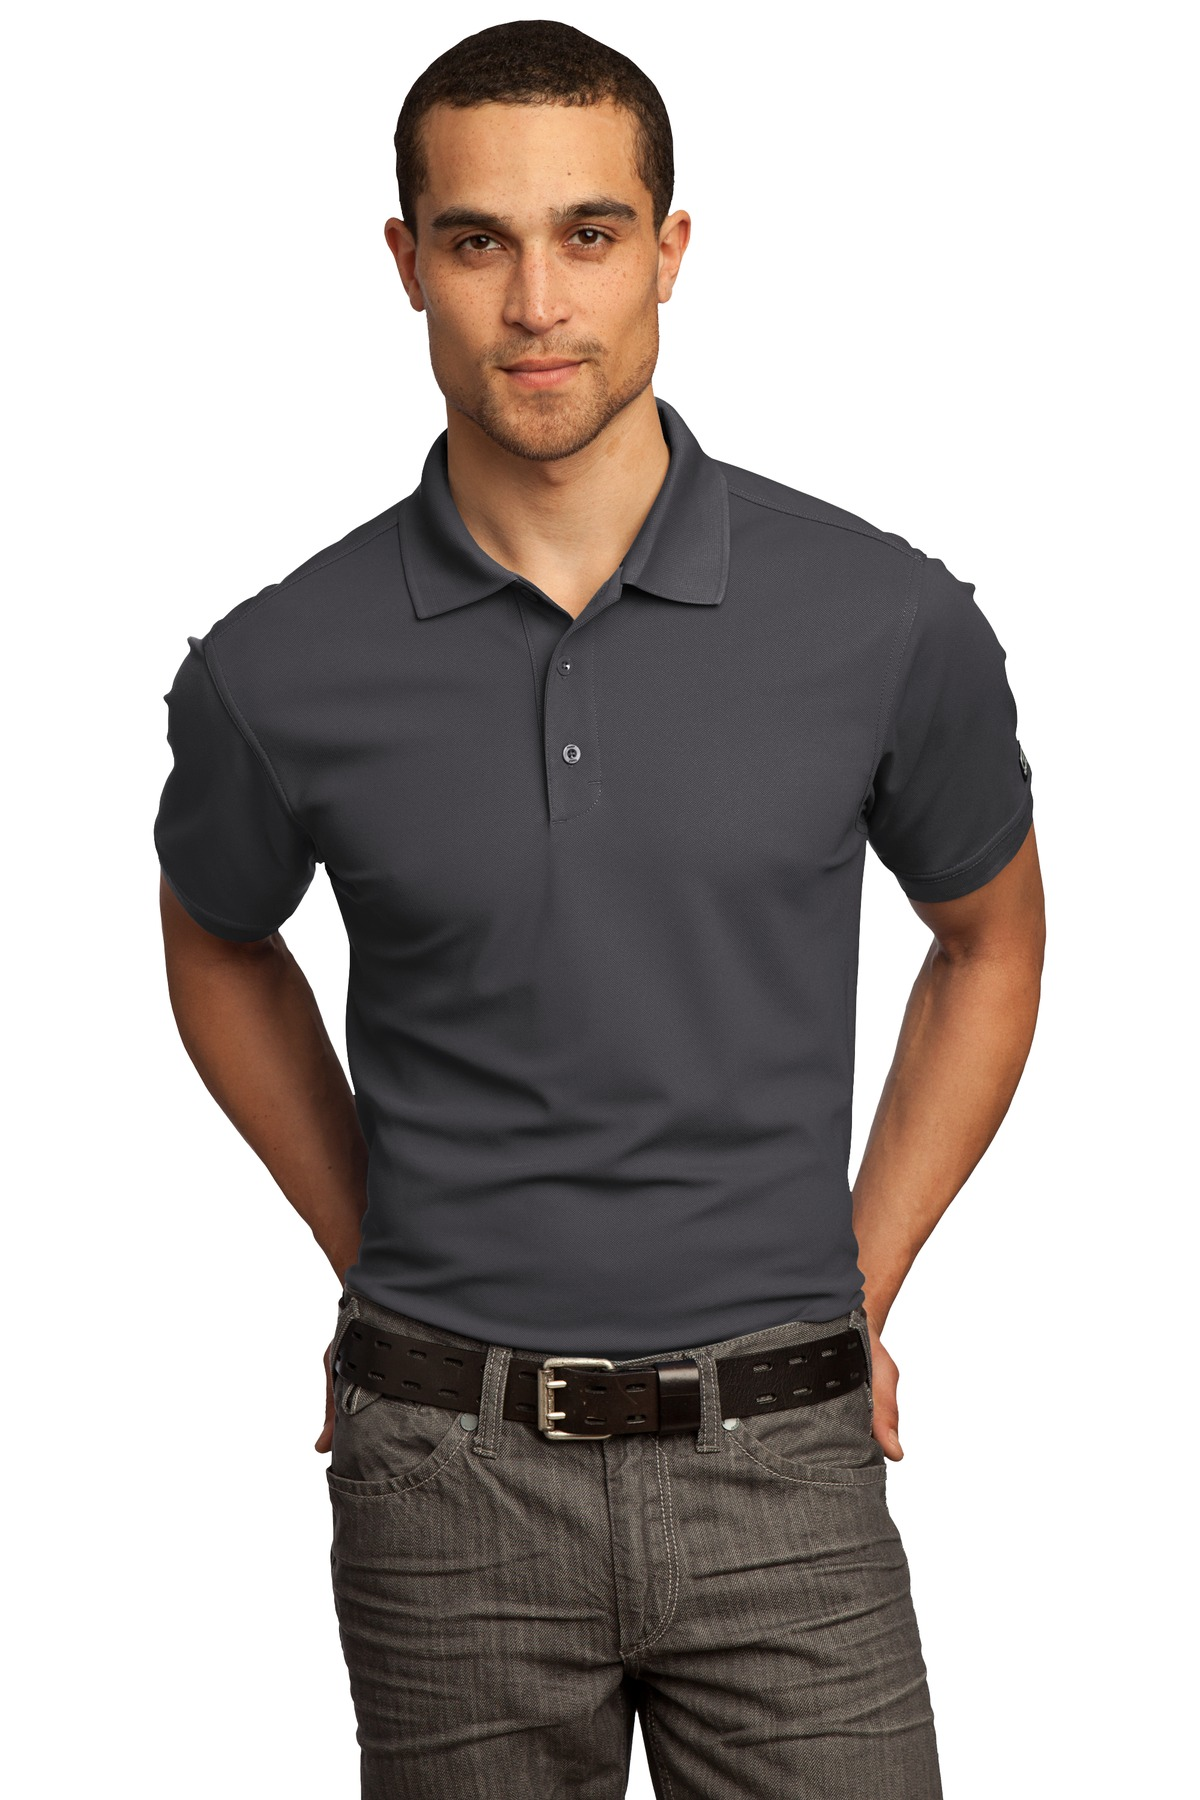 OGIO ®  - Caliber2.0 Polo. OG101 - Diesel Grey